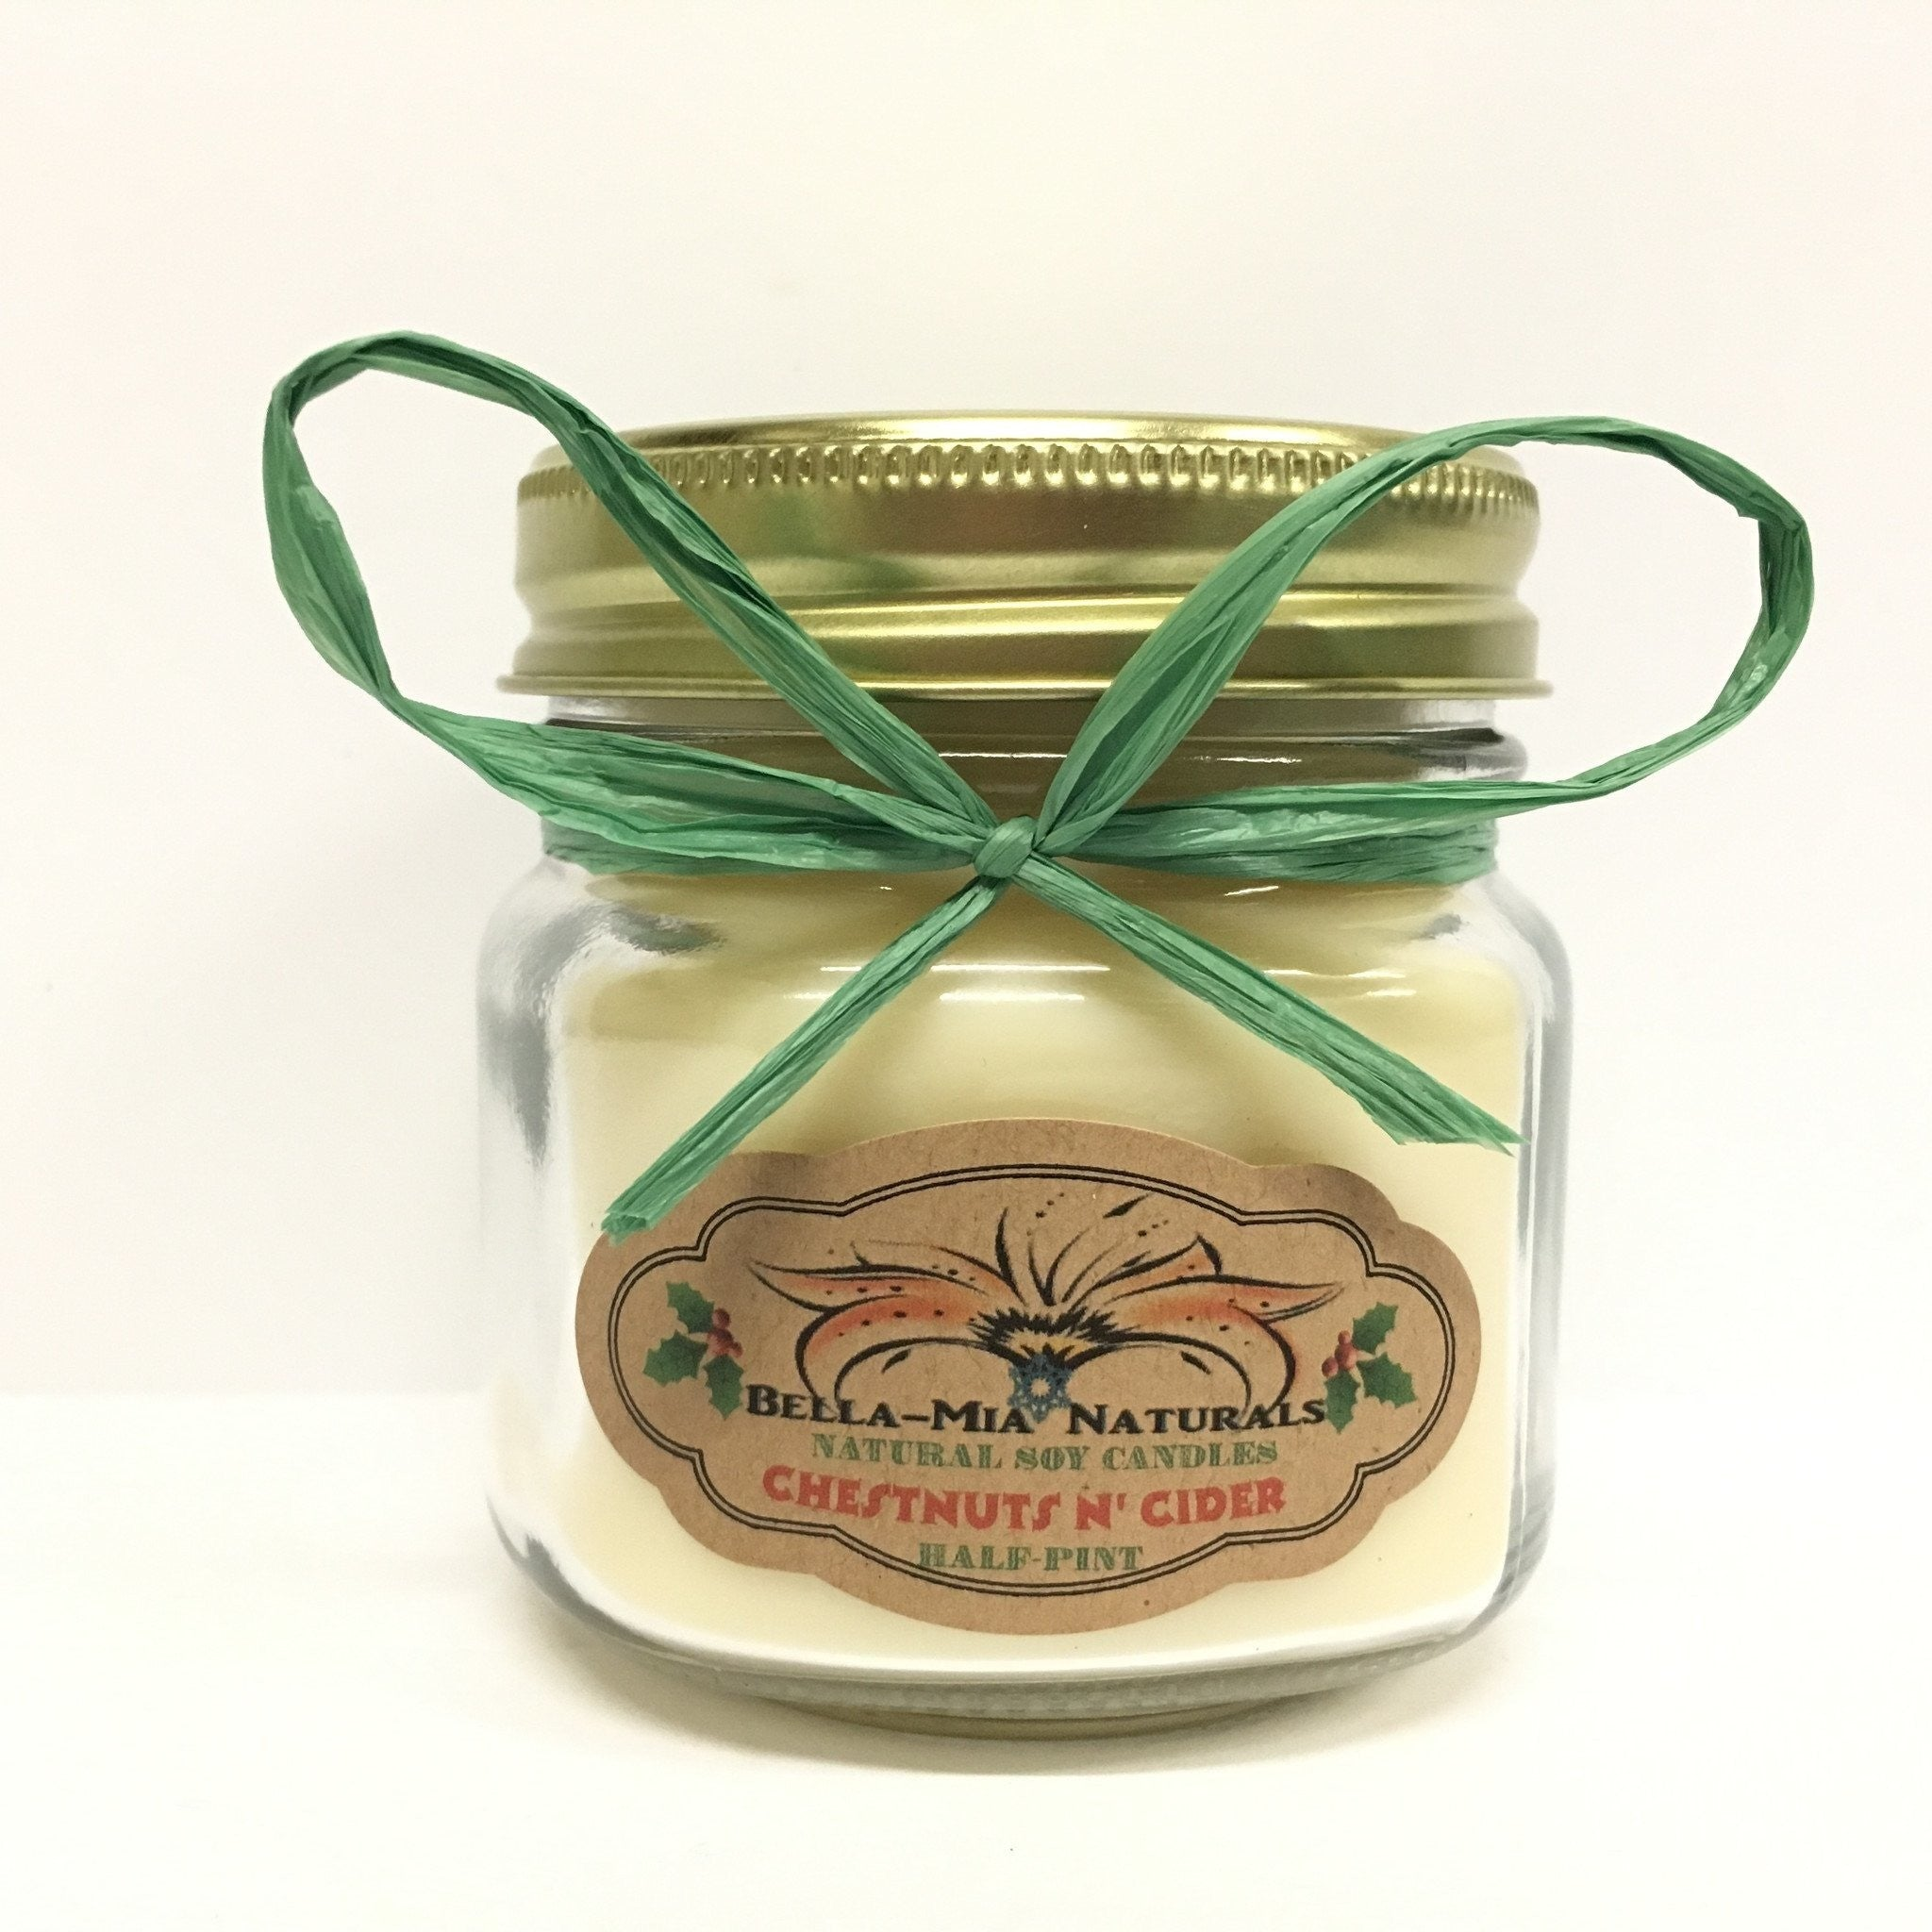 Chestnuts N' Cider Natural Hand Poured Soy Candles - Half-Pint - Bella-Mia Naturals All Natural Soy Candles & Lip Balms - 3